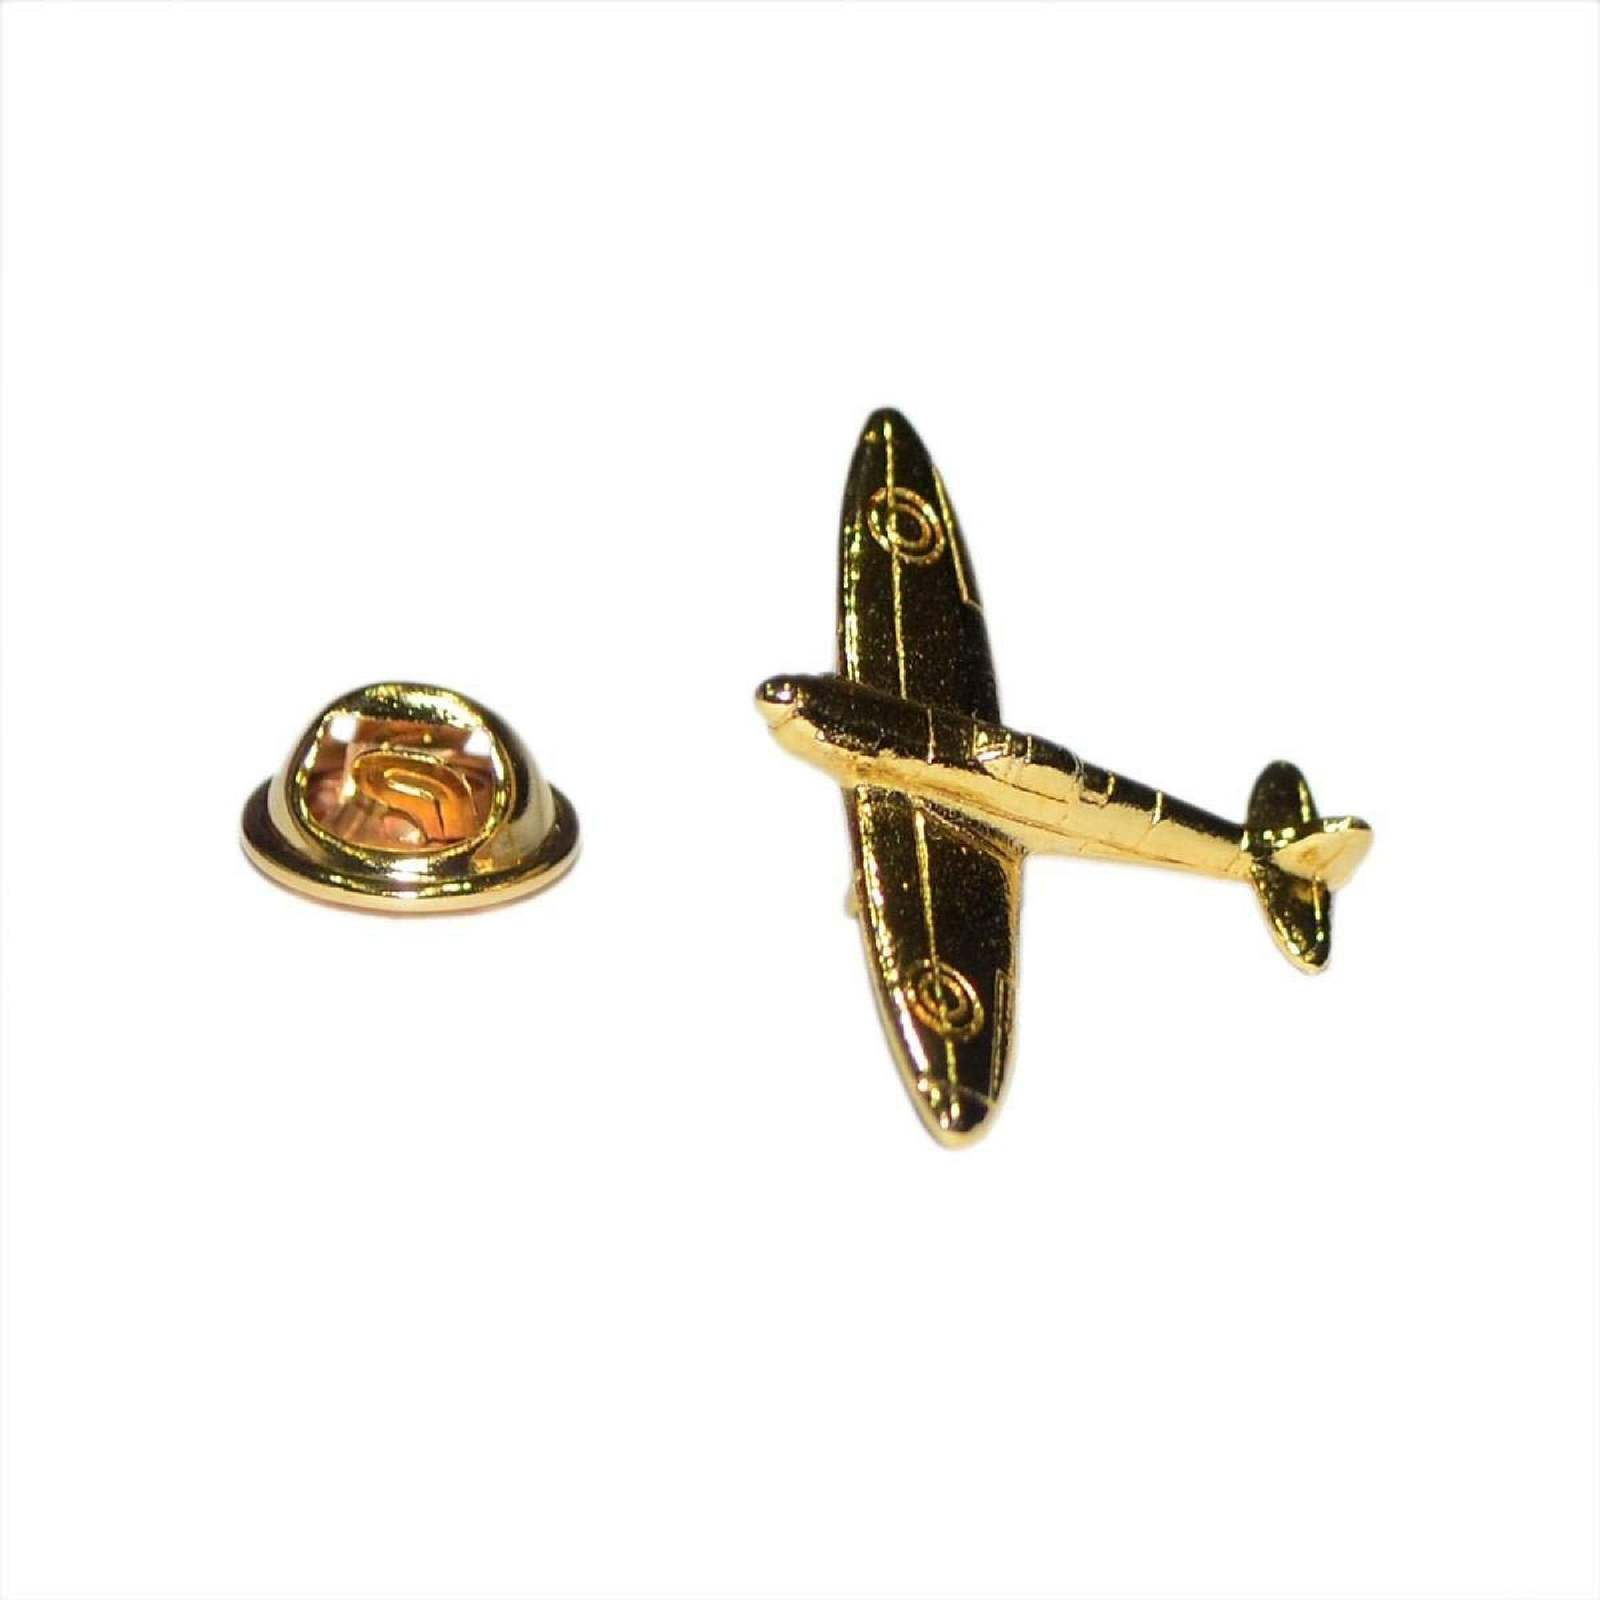 gold Plated the british iconic spitfire Lapel Pin Badge / tie pin ww2 aircraft